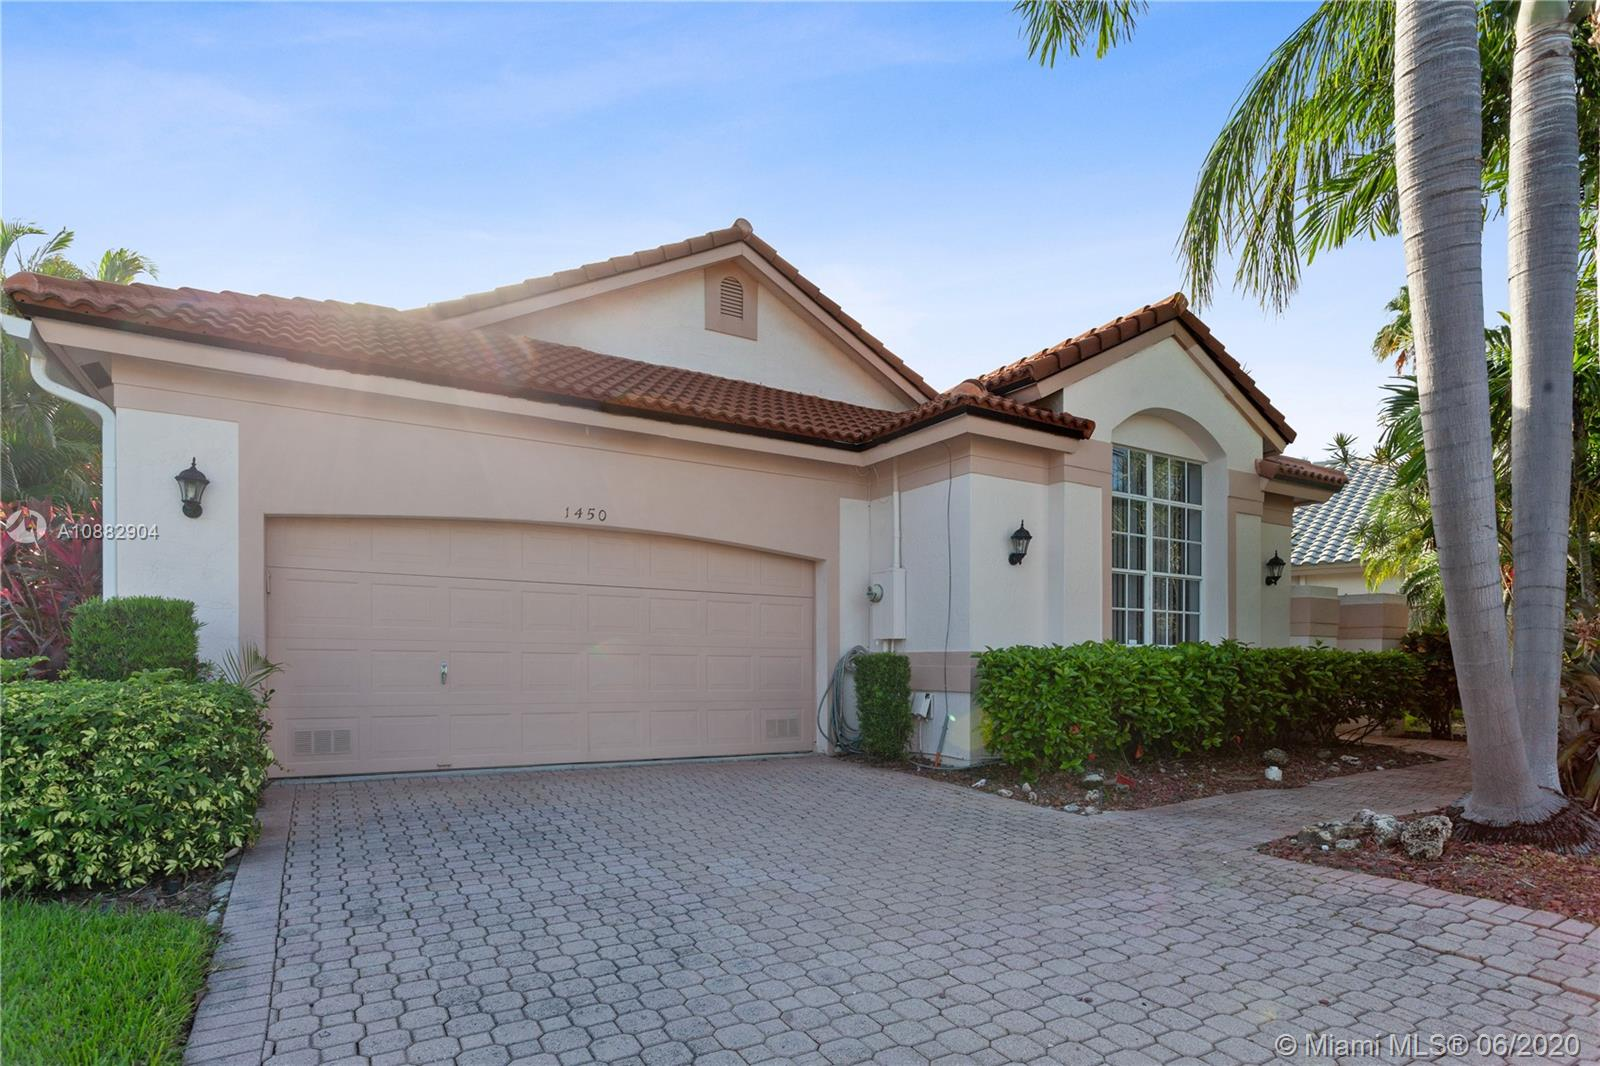 Come experience the Grand Palms Golf Resort lifestyle. The community is top notch and it offers a gated entry, manned by 24 hr security guard, beautiful palm lined streets, jogging and biking paths, green spaces, children playground, lush landscaping and HOA office on site. This home offers 3 large bedrooms and 2.5 bathrooms with a wide open floor plan and a vaulted grand room full of natural light. Beautifully designed kitchen and tile throughout the entire house.  The exterior is complemented with a screened patio and is surrounded by lush landscaping. ROOF is 2 years NEW! HOA includes basic cable, alarm, lawn/landscaping, exterior painting every 5 years and presure cleaning. A+ schools, Whole Foods, Costco, Starbucks right outside community along w/ shopping and restaurants.